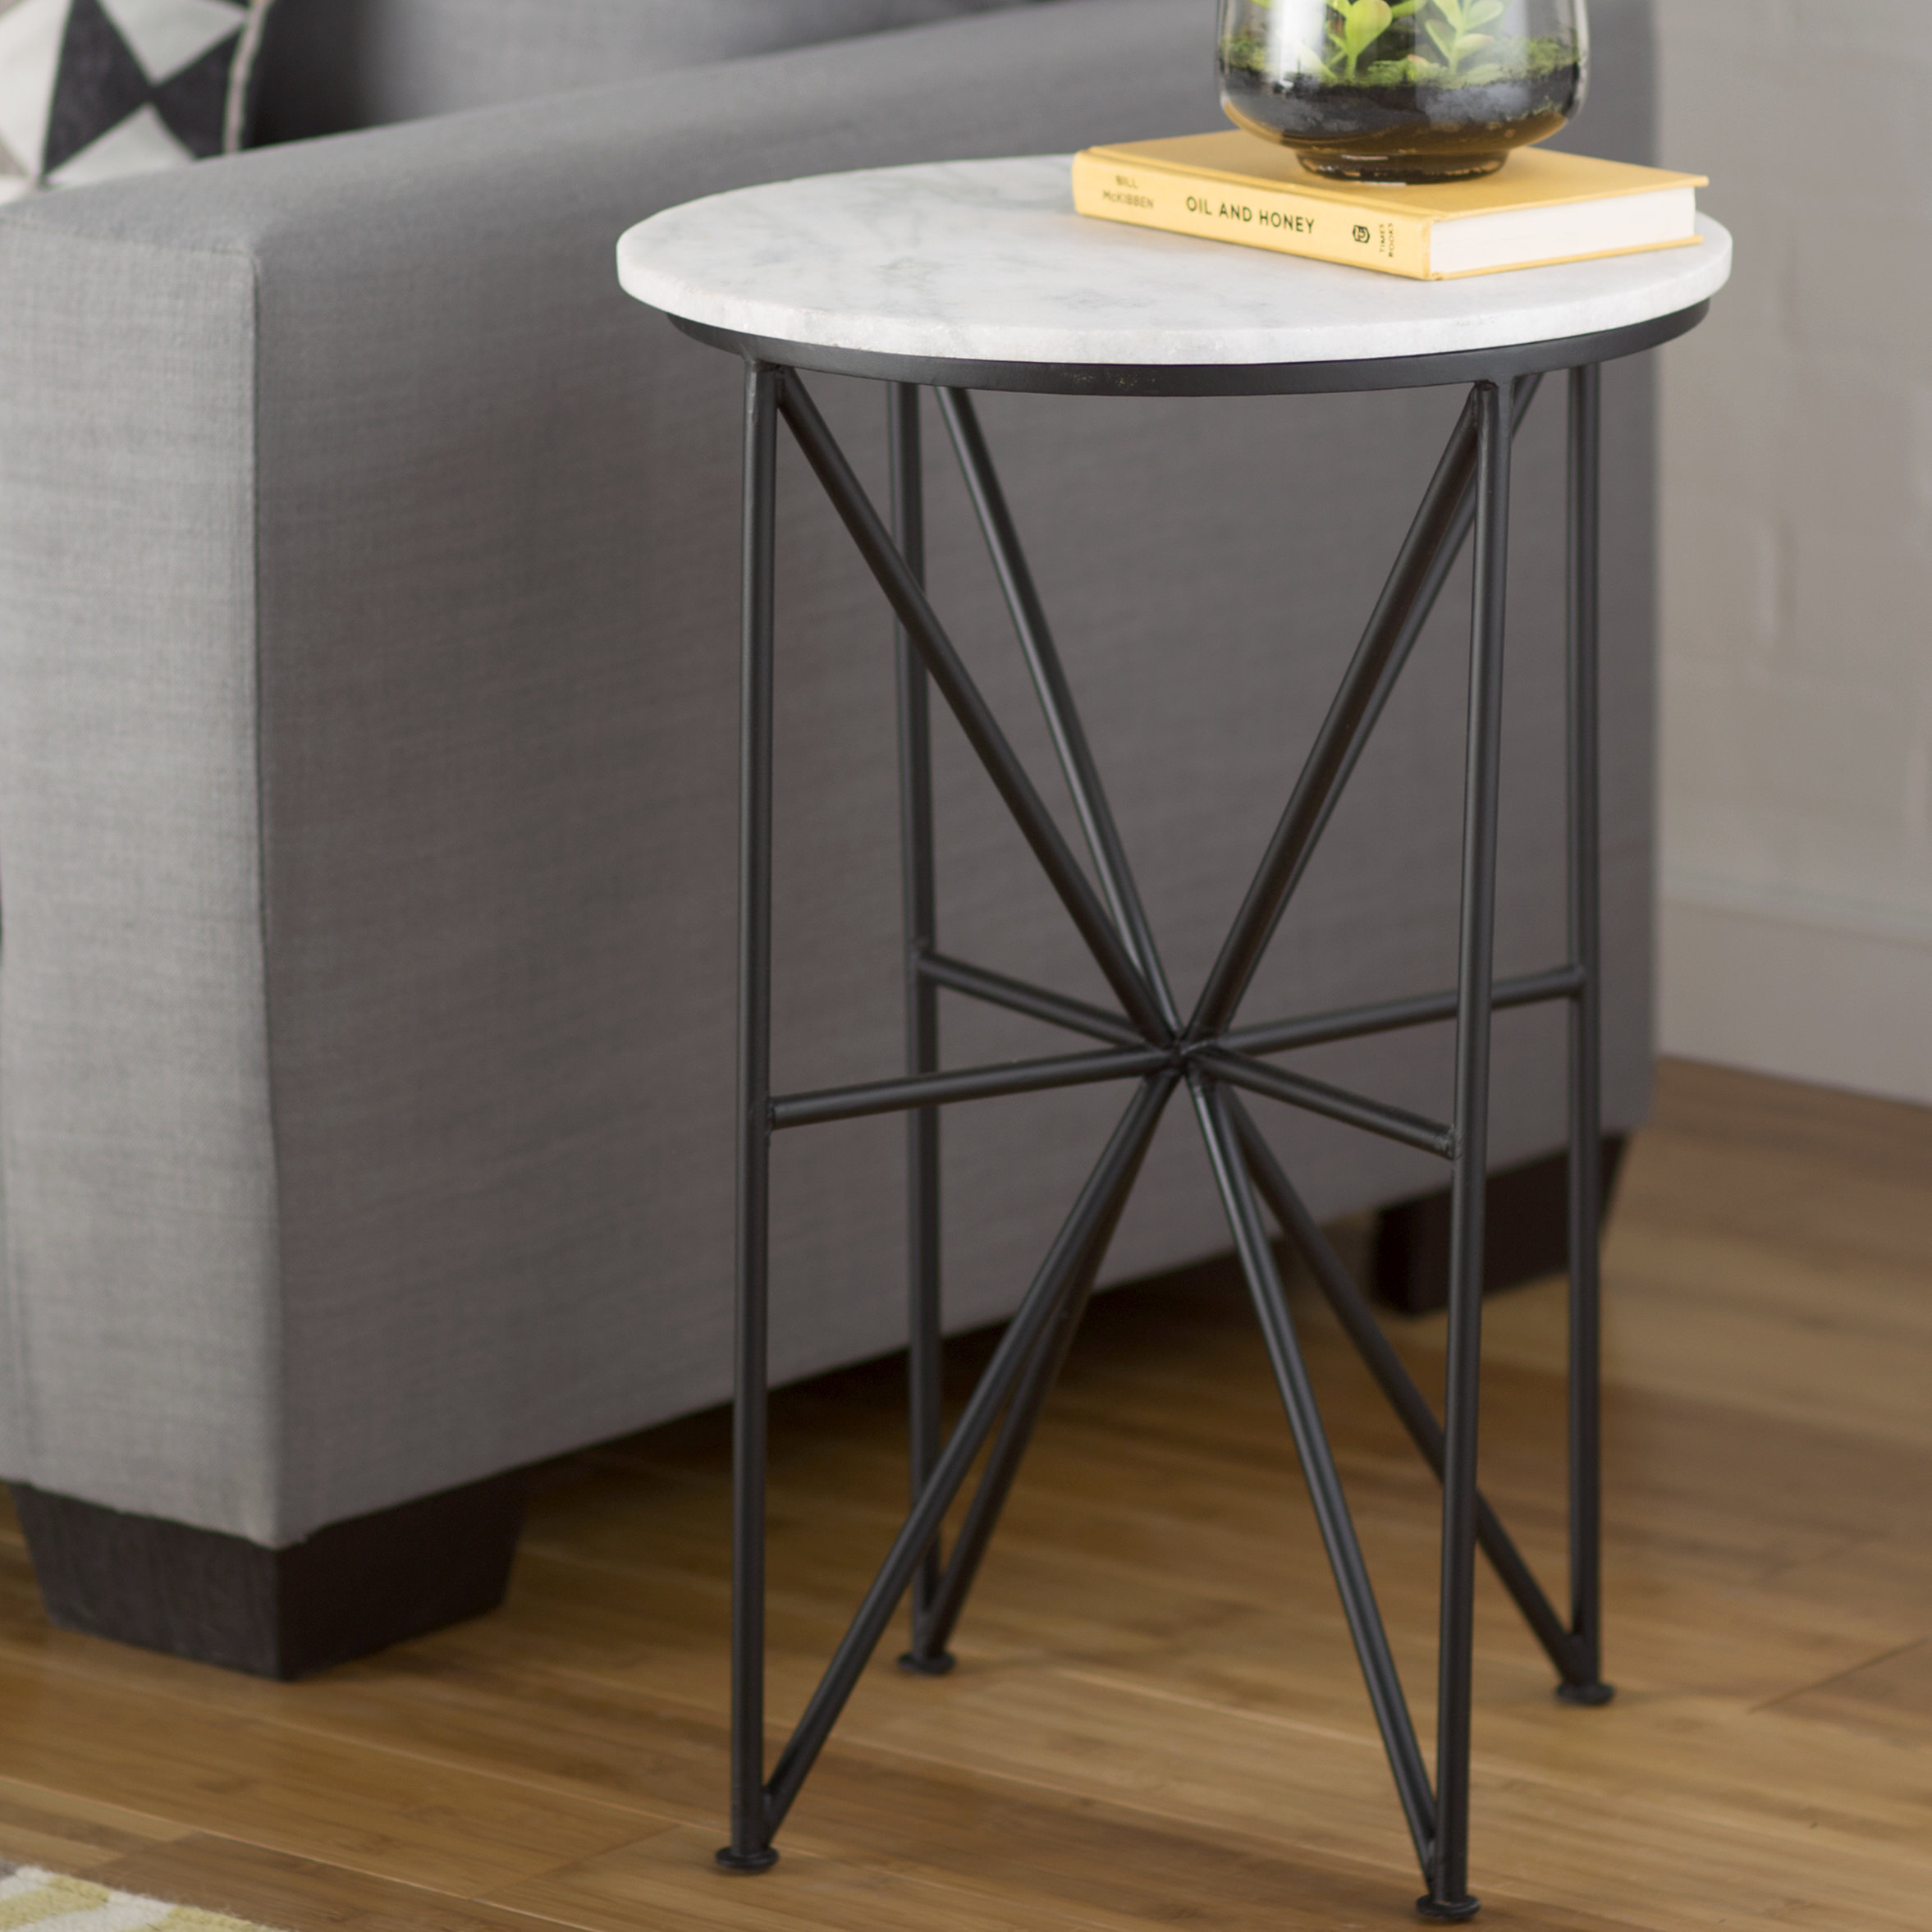 mercury row basnight end table ifrane accent clearance bedding stool whole lighting fixtures glass mirrored coffee metal home decor carpet door trim outdoor aluminum kitchenette